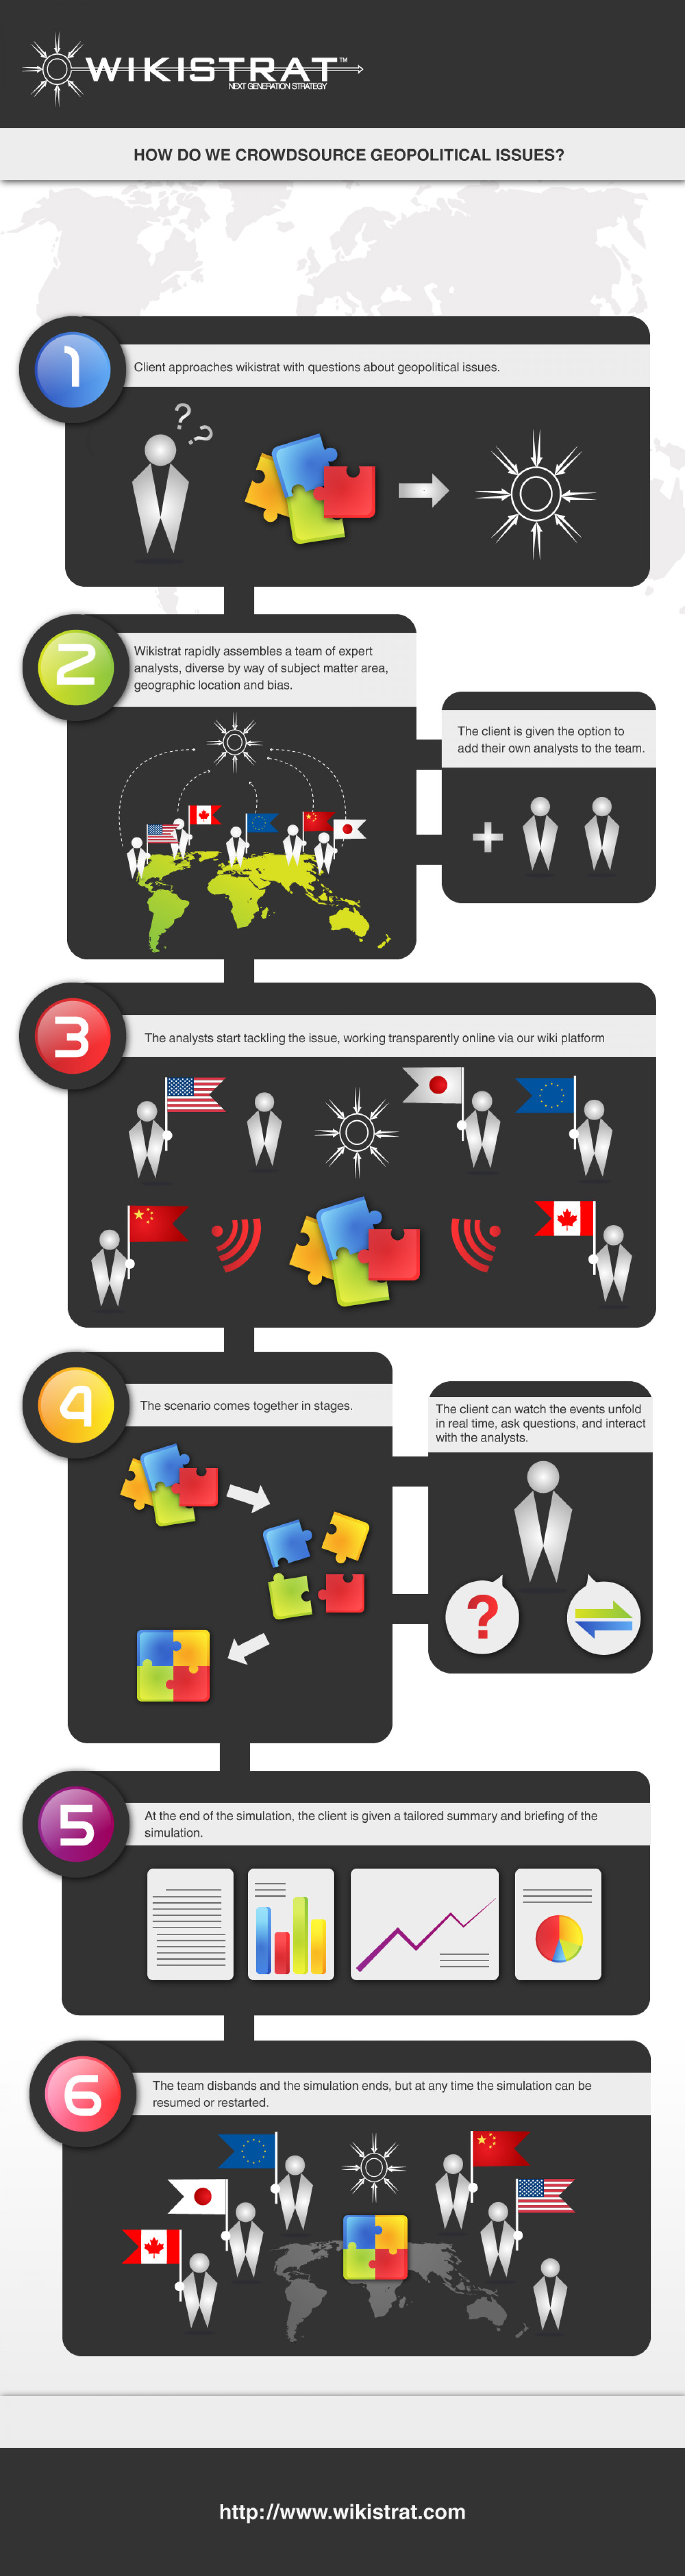 How Do We Crowdsource Geopolitical Issues? Infographic